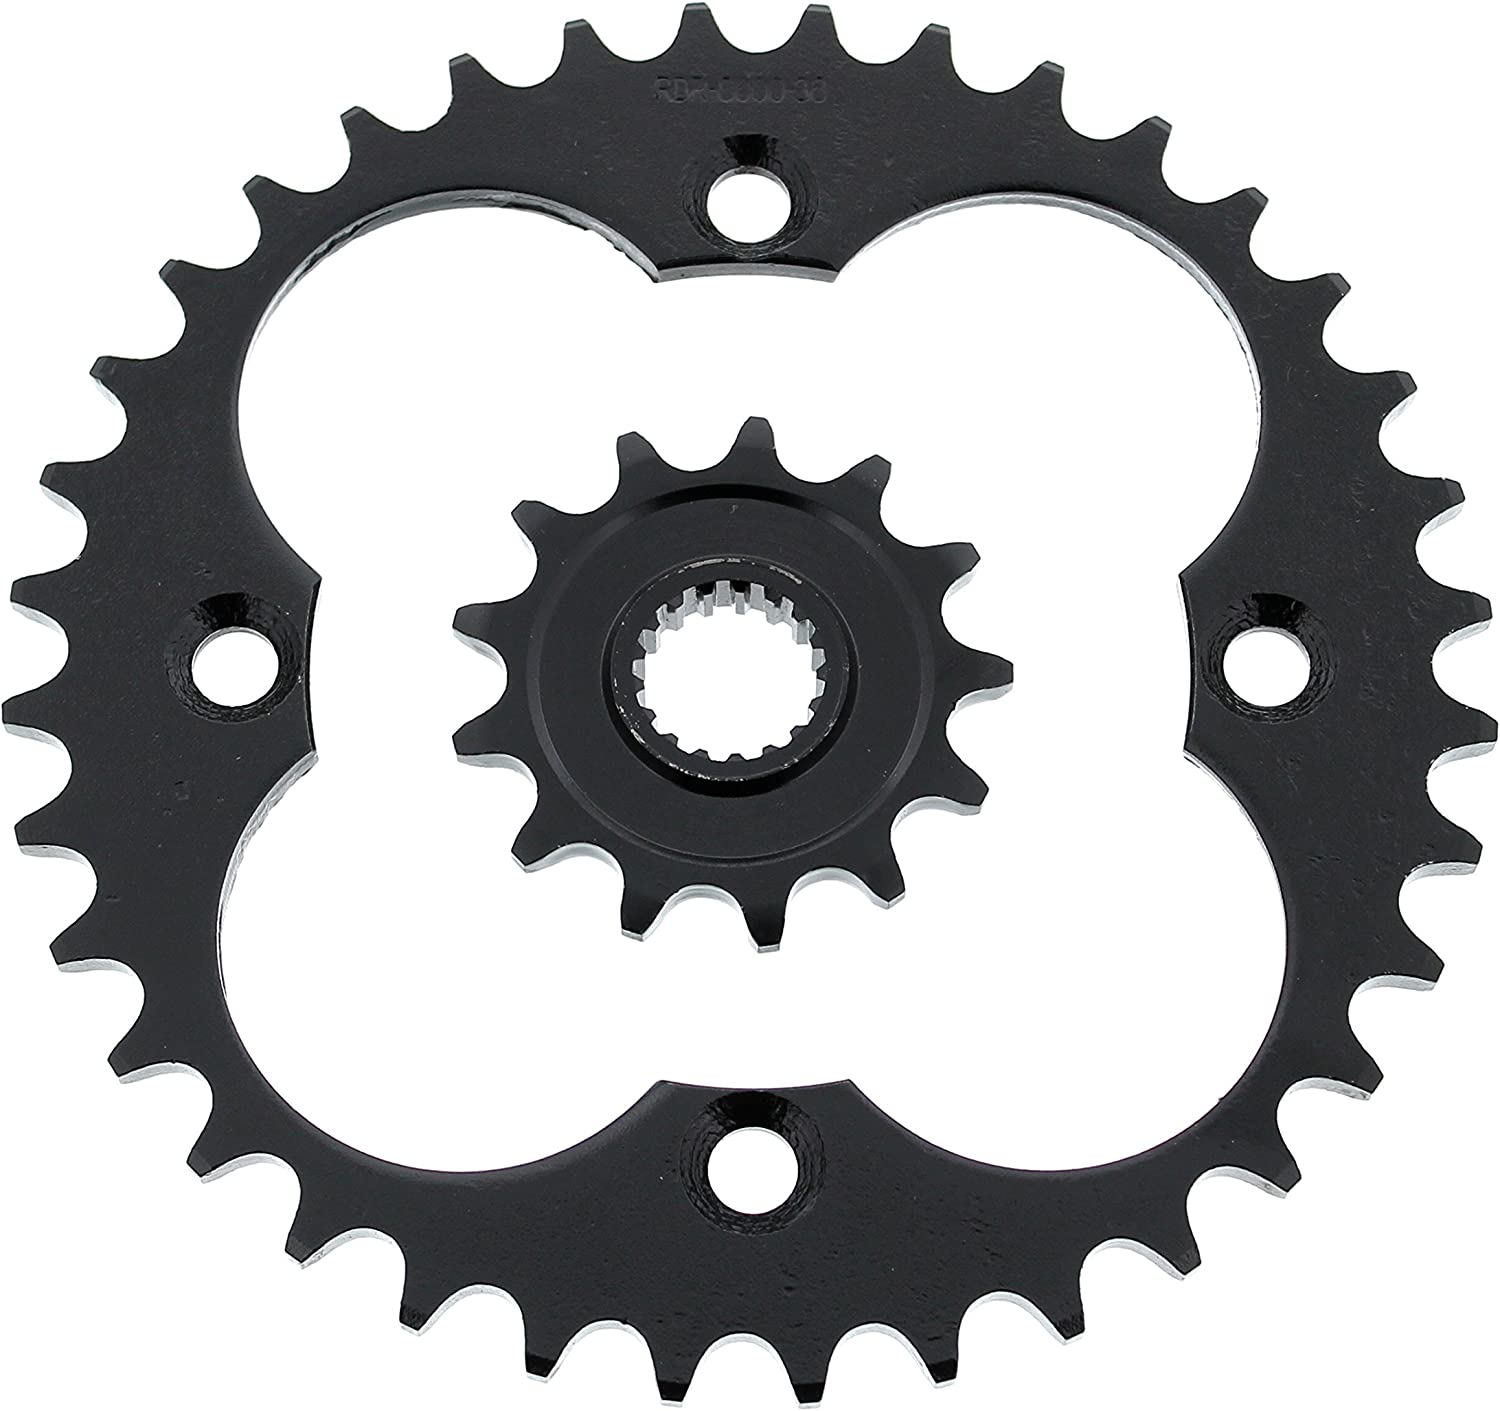 2004 2005 Fits Honda TRX450R 13 Tooth Front /& 36 Tooth Rear Silver Sprocket